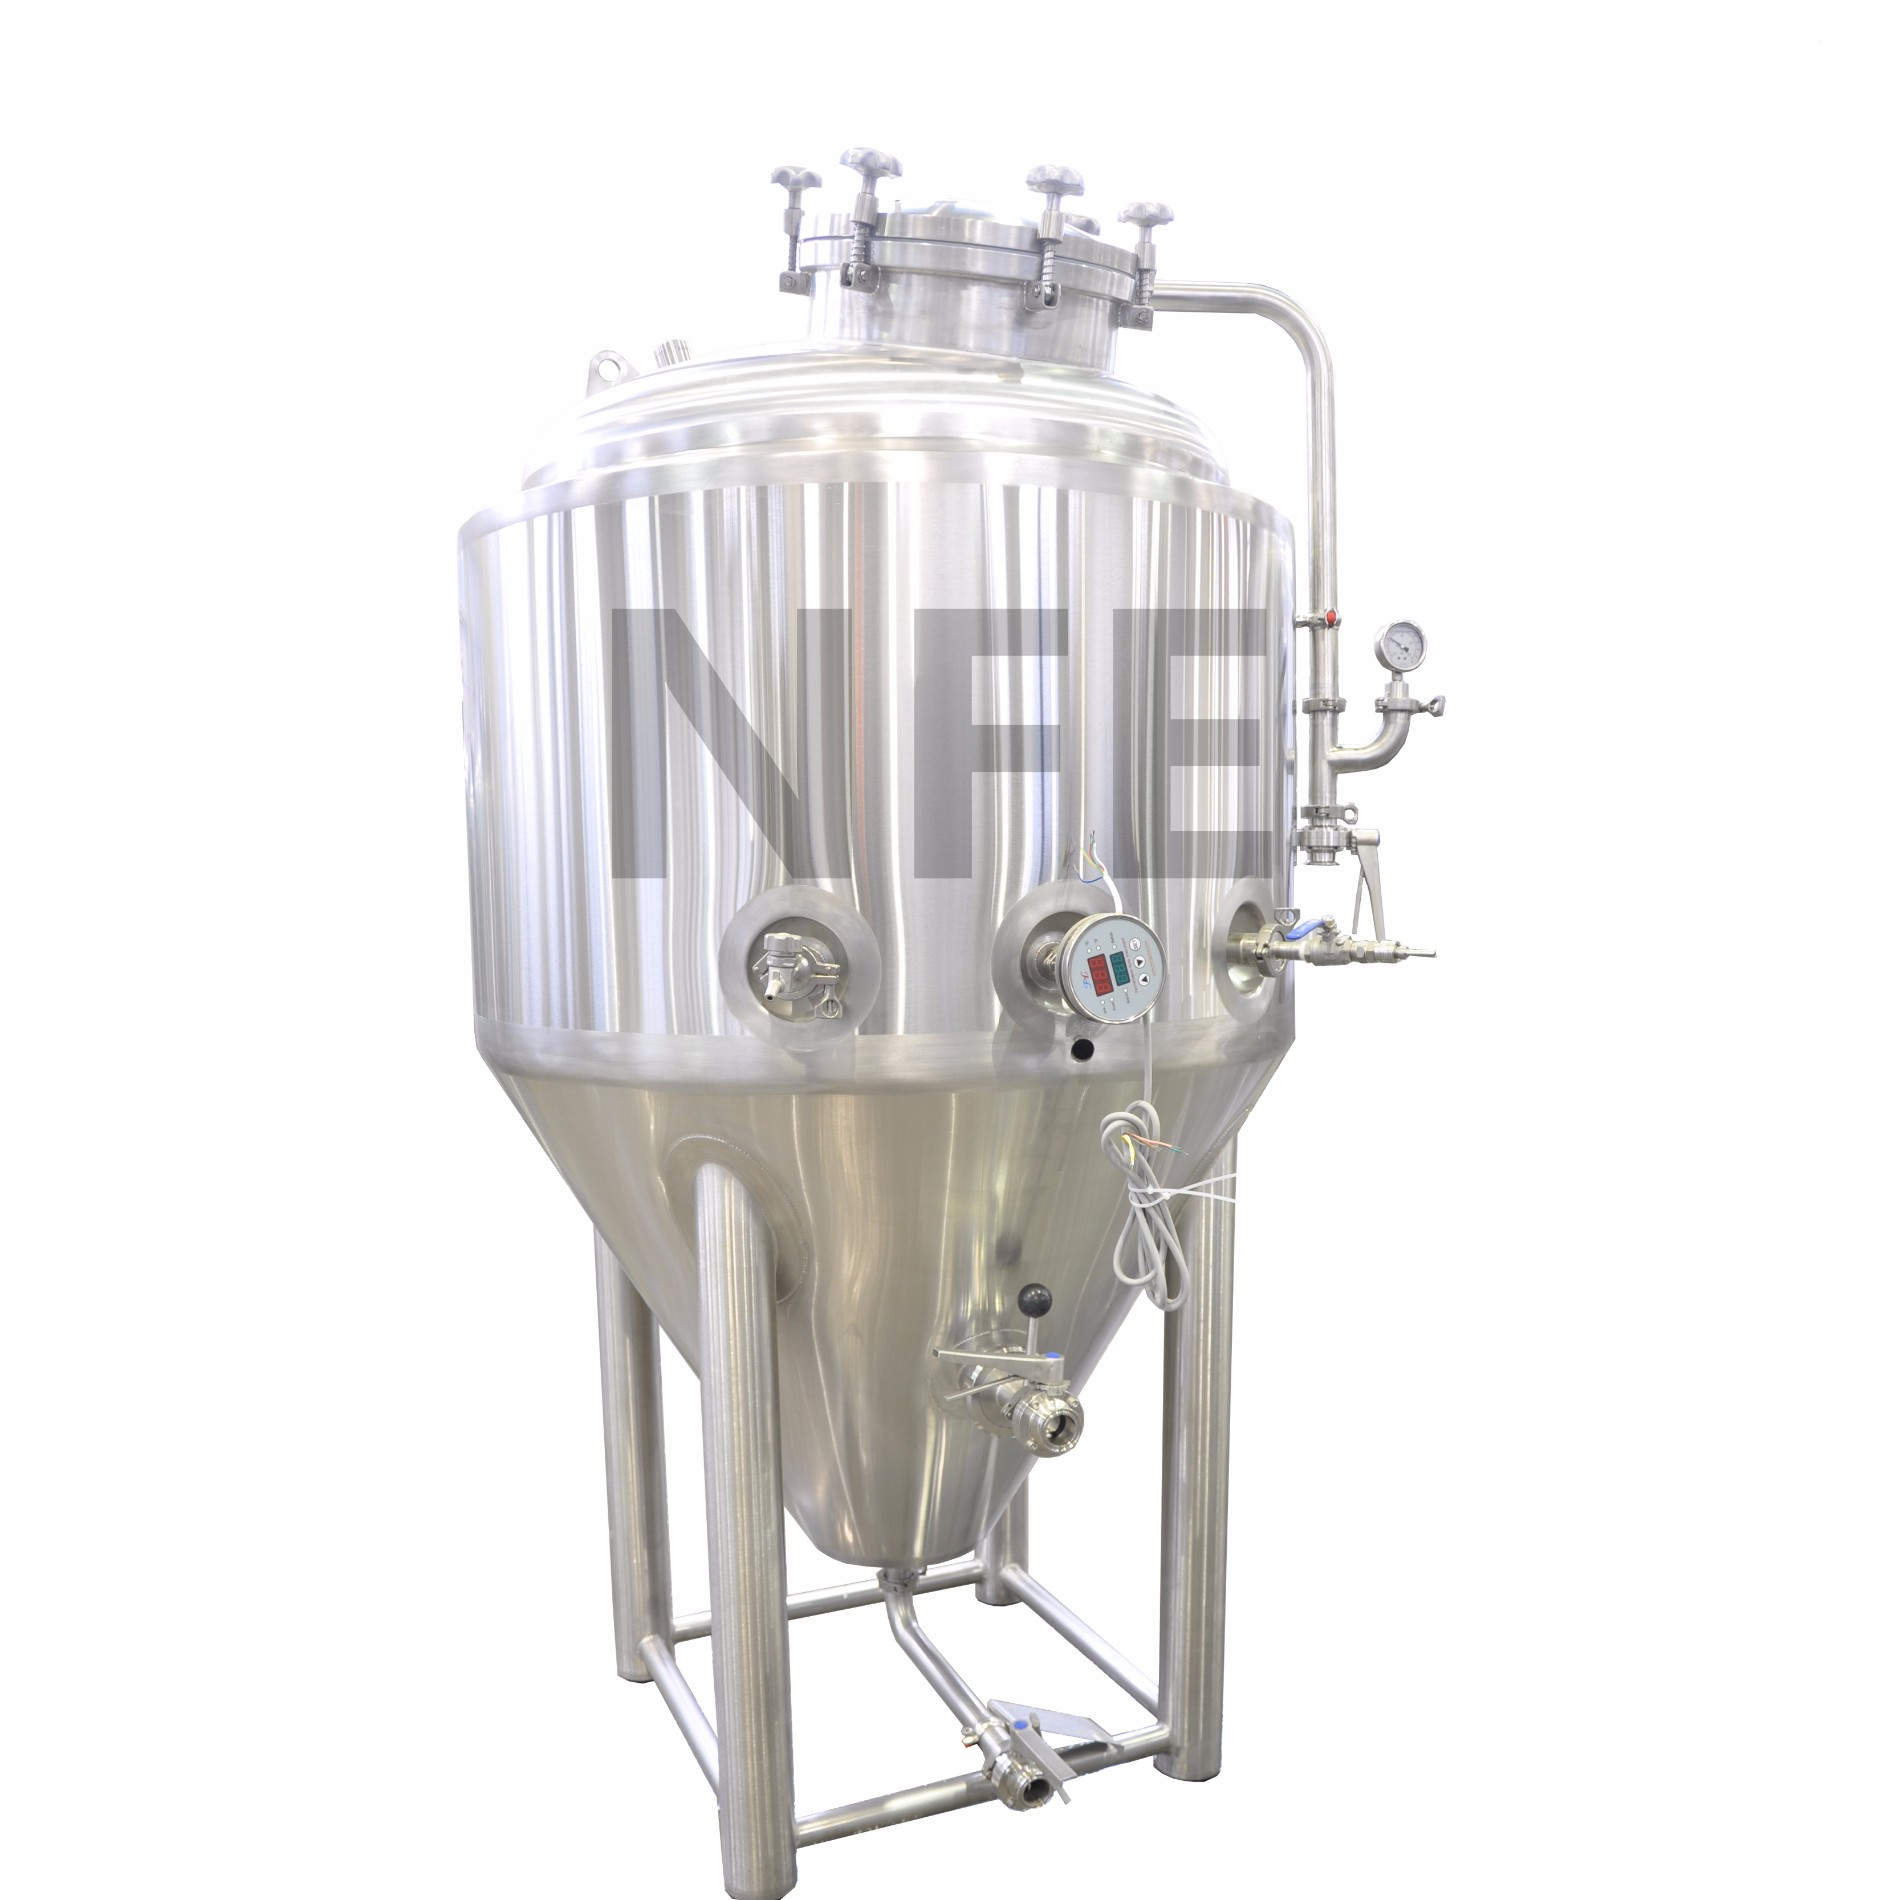 fermenter Fermenter main features: • 304ss with dual or multi zoned glycol jacket and insulated with 100mm chloride free pu insulation top manways offer superior sanitation and ease to add fining and hops to the vessel.